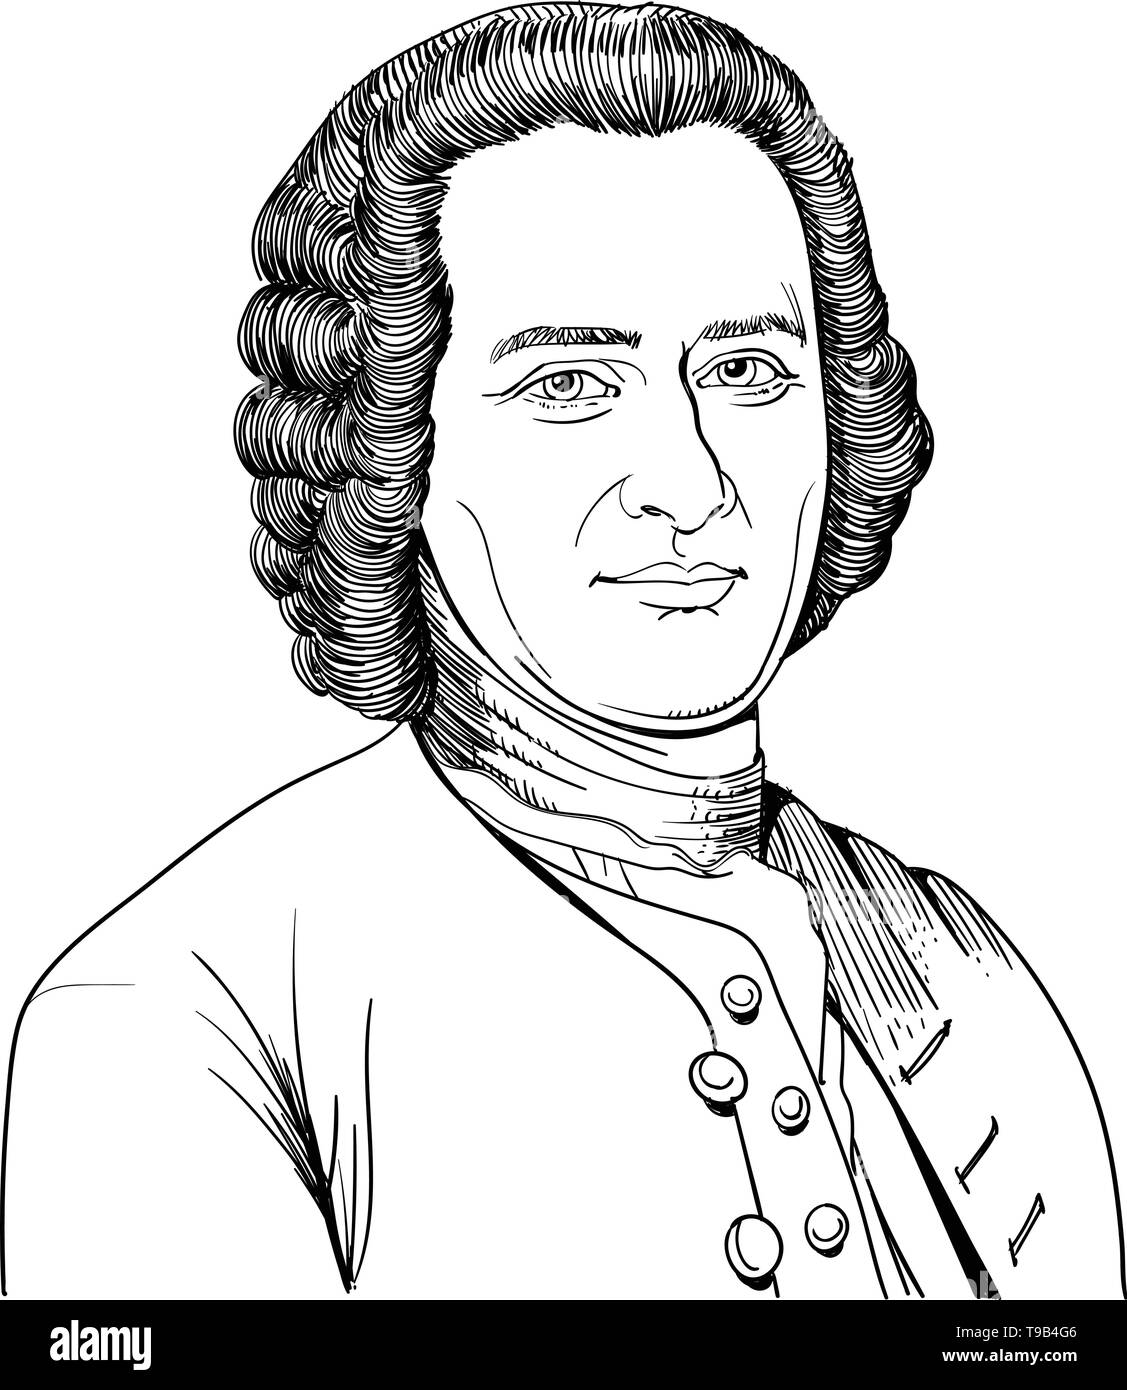 Jean Jacques Rousseau portrait in line art illustration. He was a philosopher, writer, and composer. Stock Vector